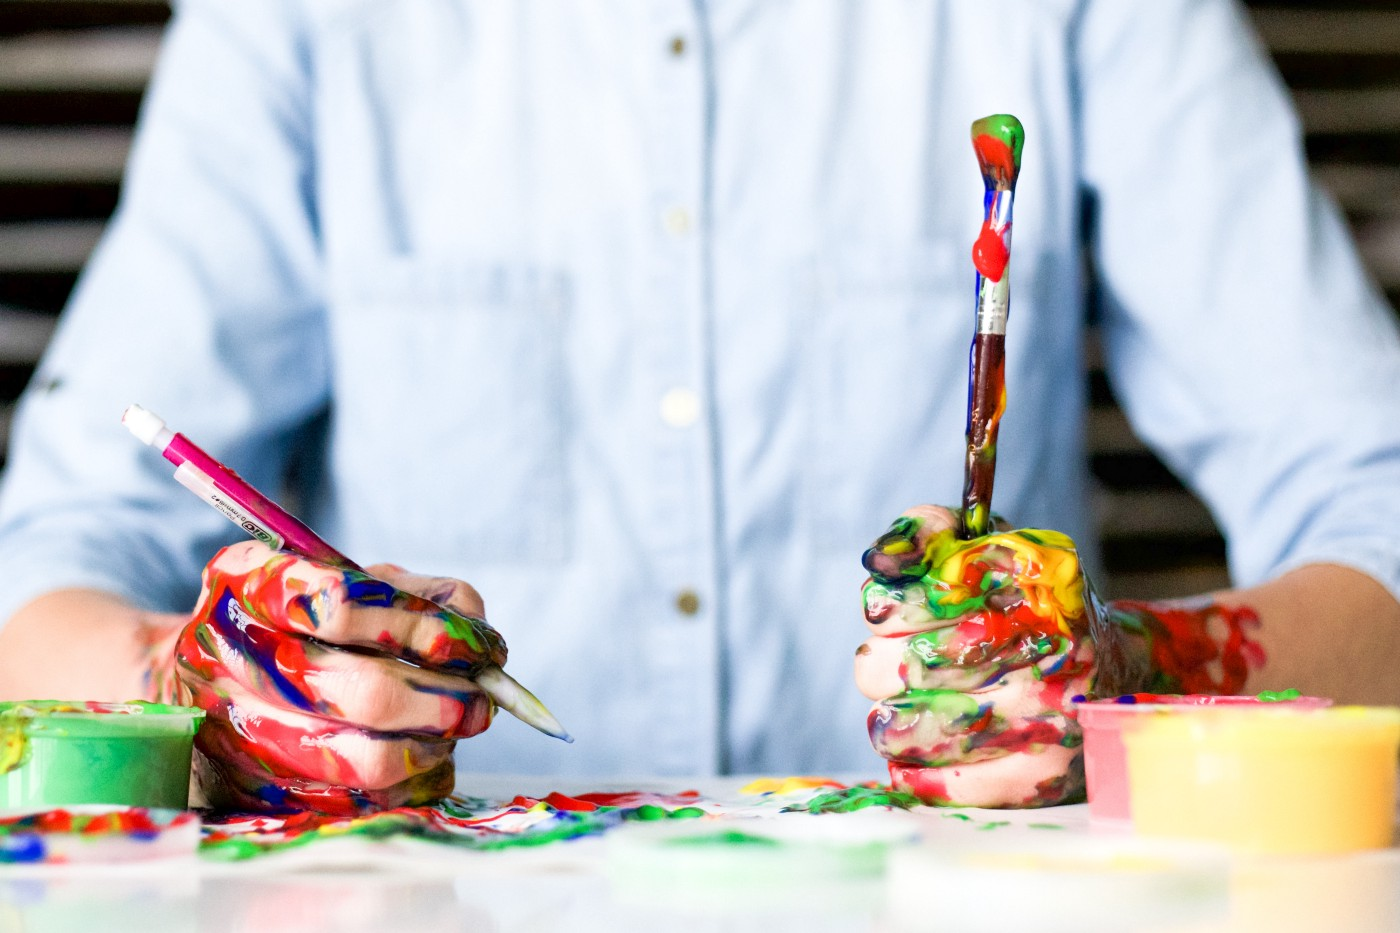 A man holding a pen with paint on his hands